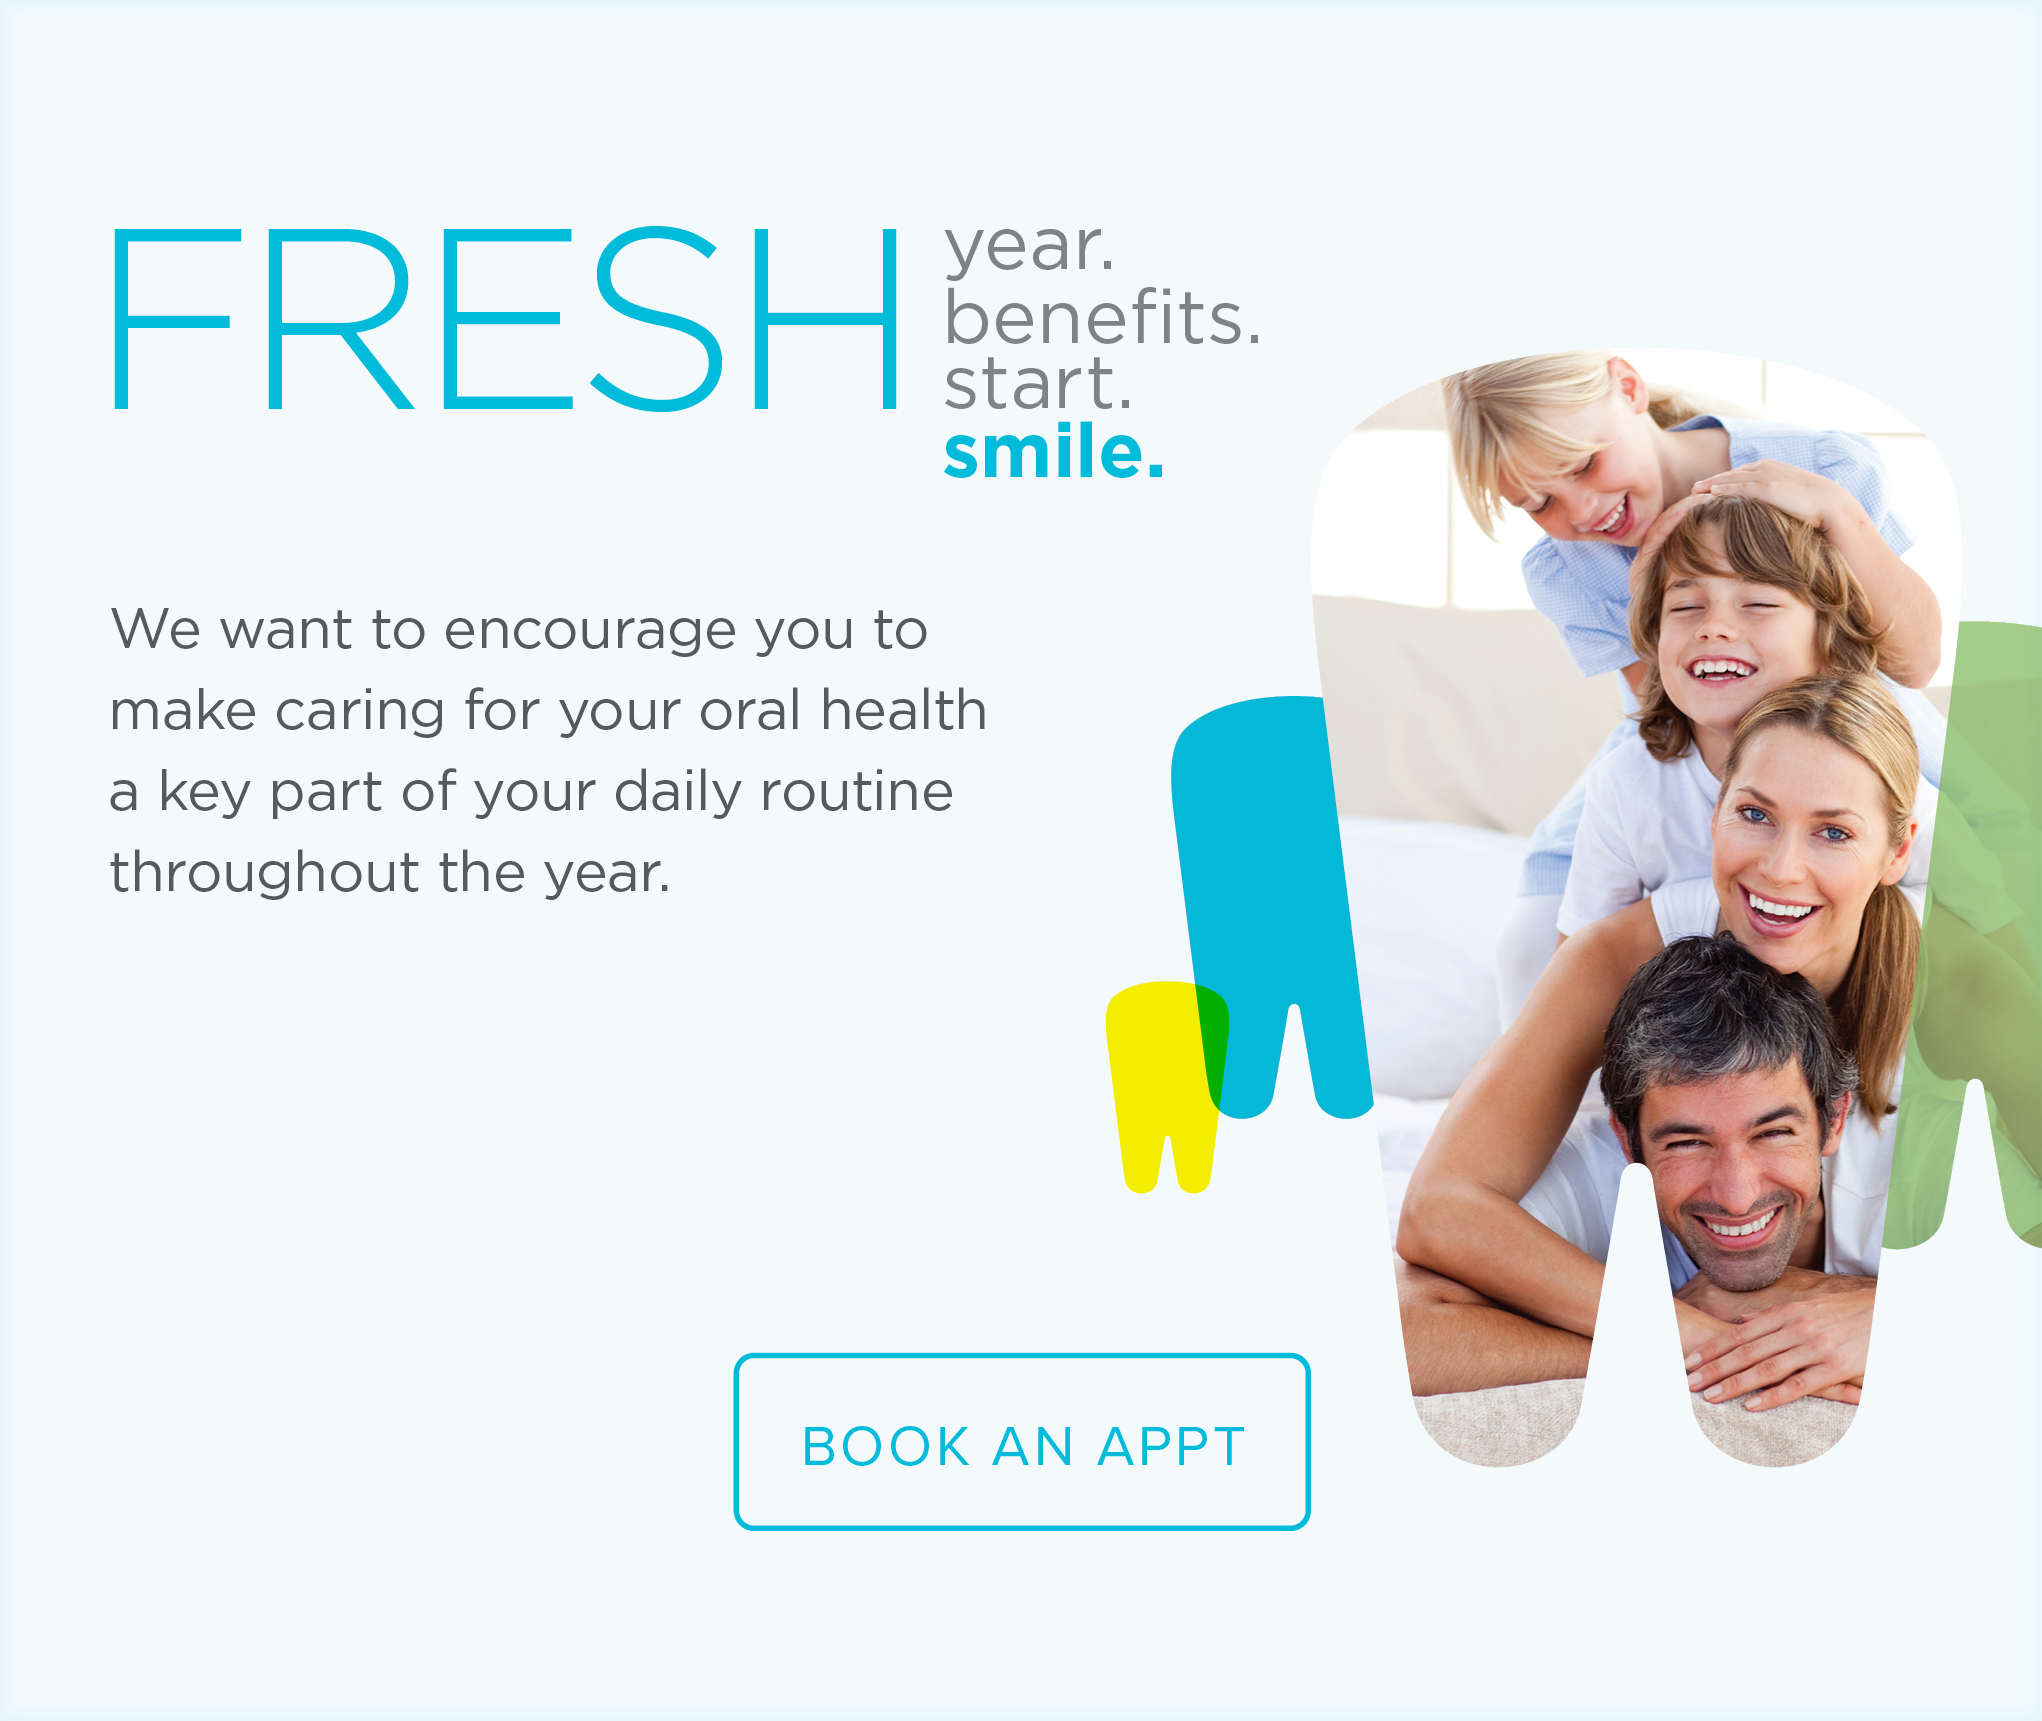 Lafayette Modern Dentistry - Make the Most of Your Benefits